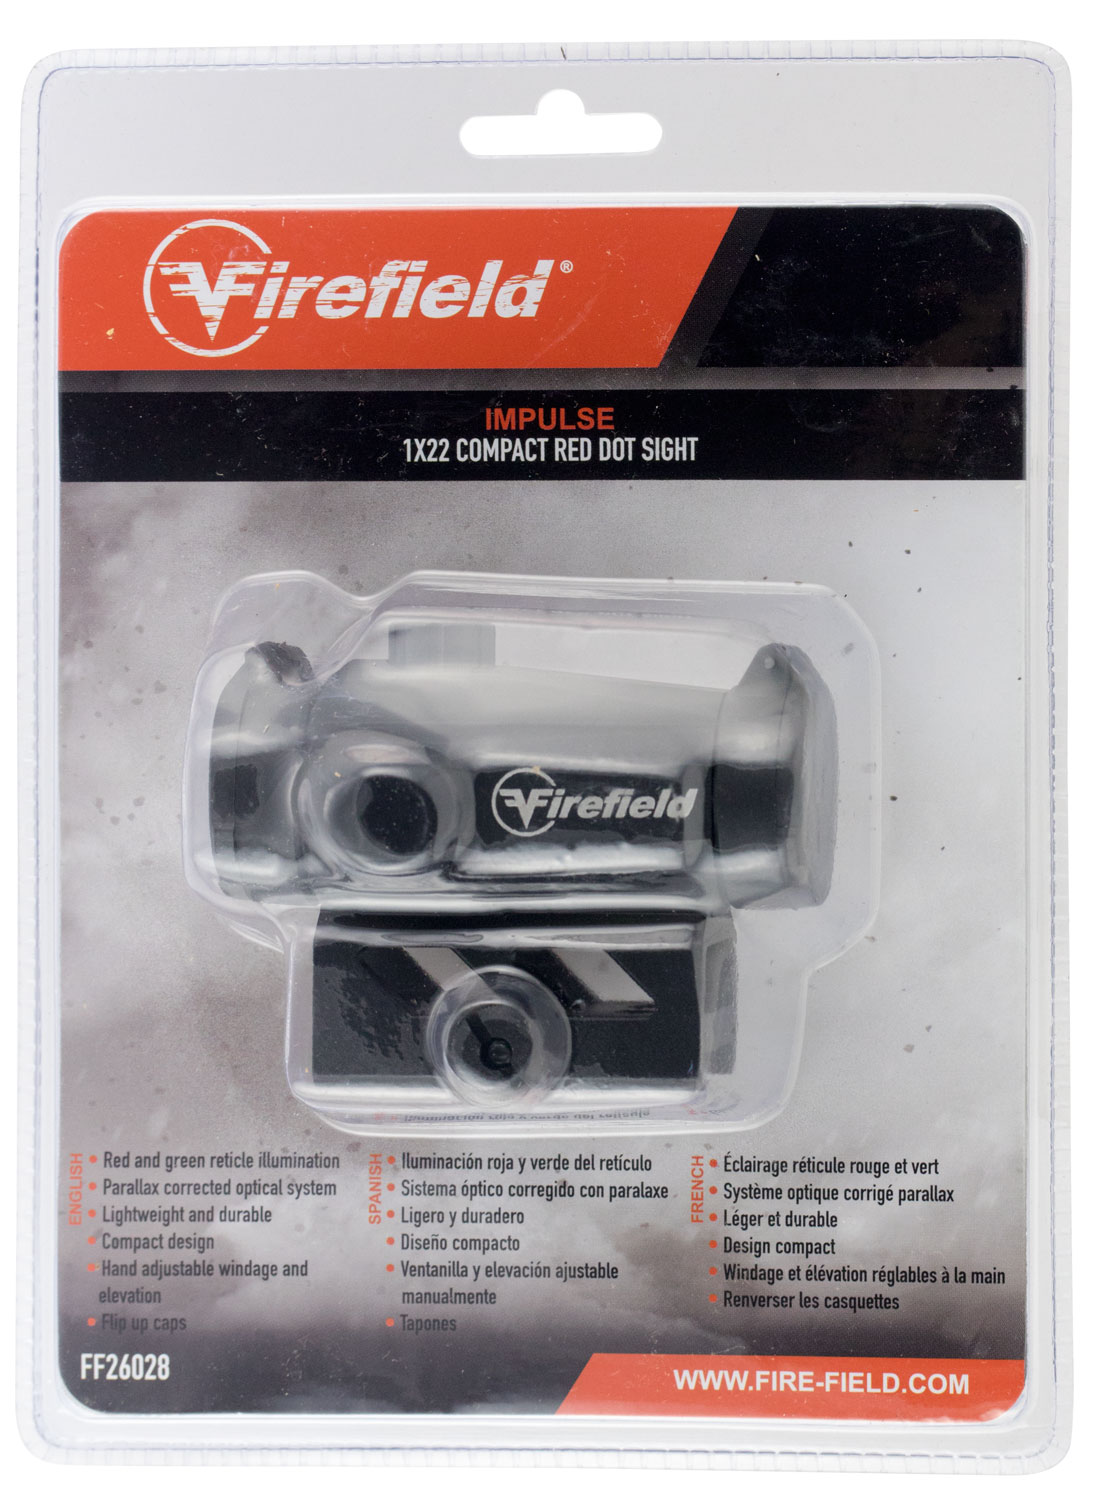 FIREFIELD IMPULSE COMPACT RED DOT